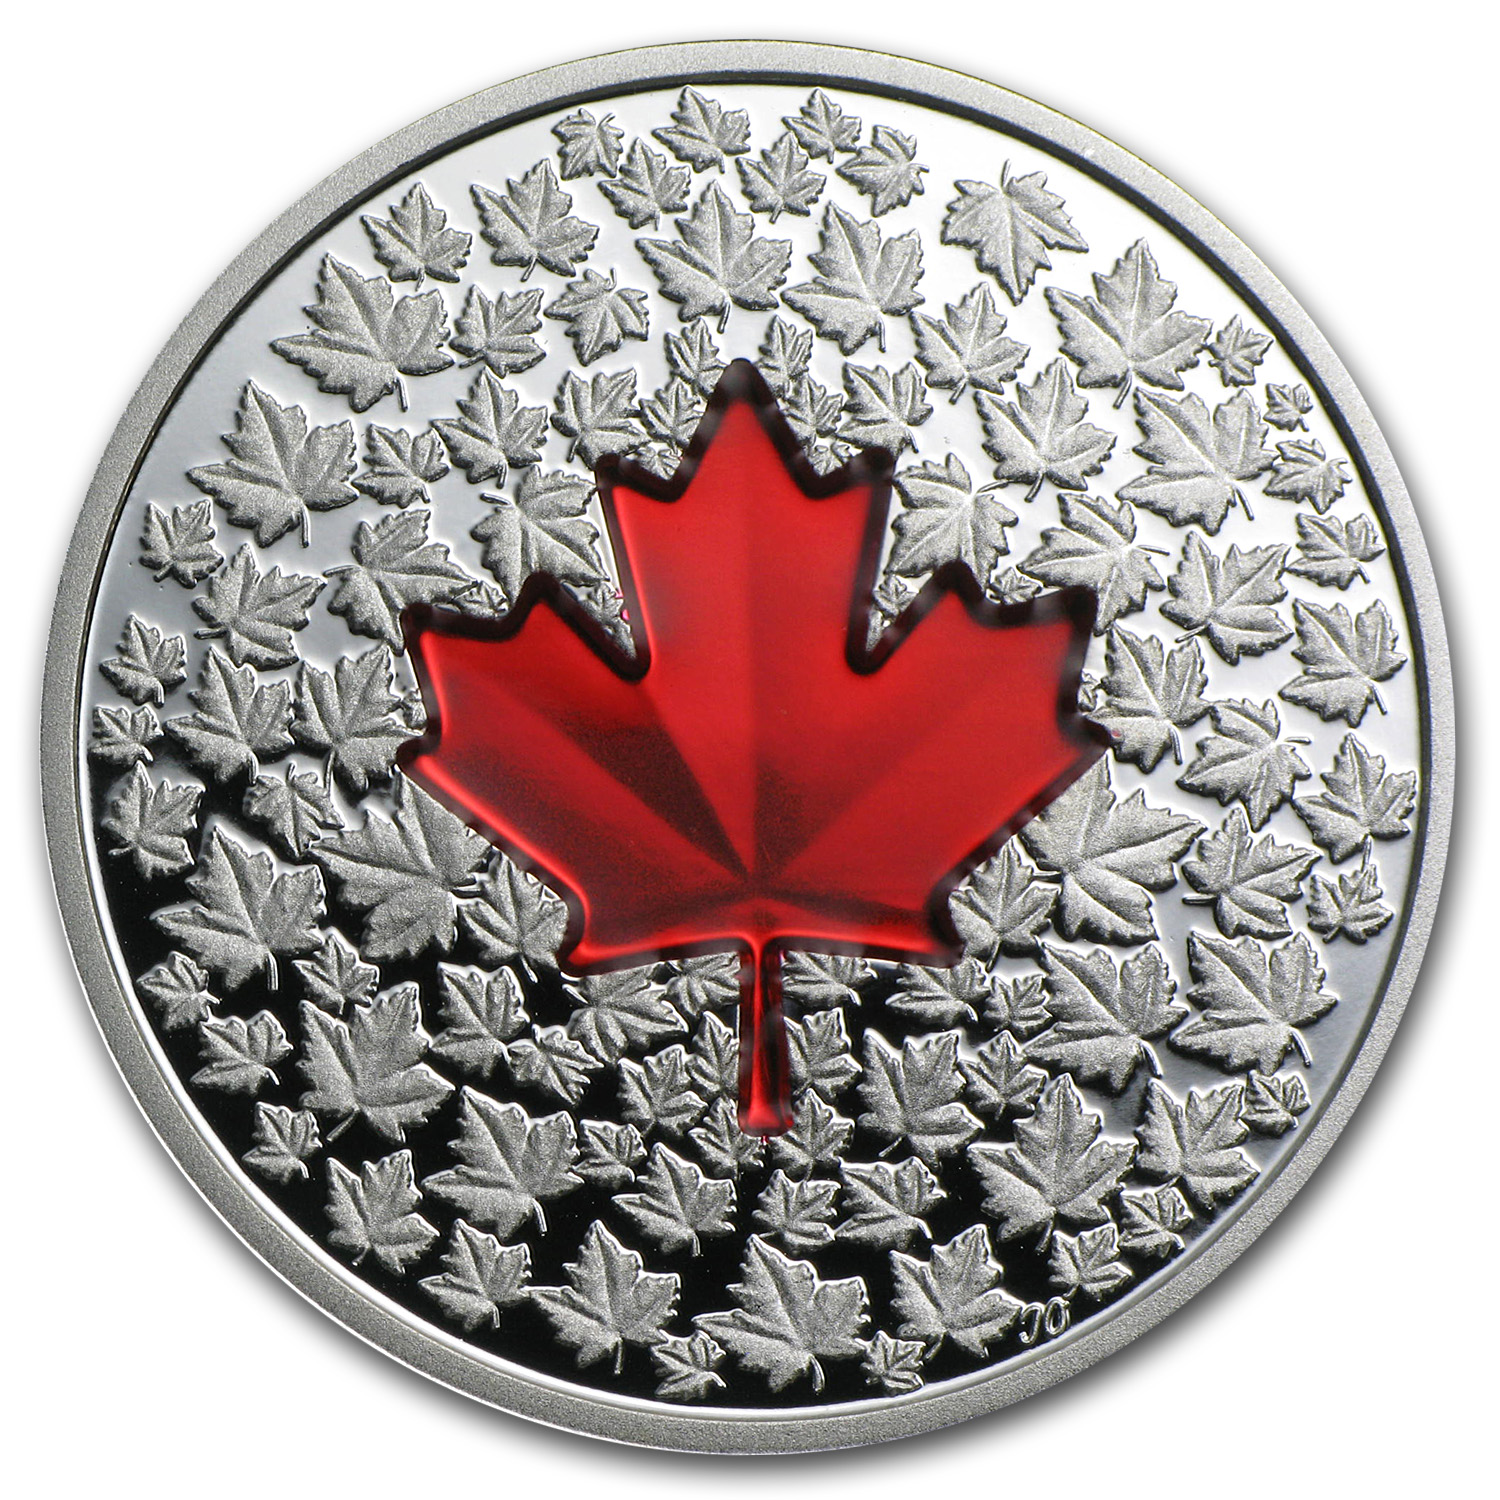 2013 1 oz Silver Canadian $20 Maple Leaf Impression - Red Enamel